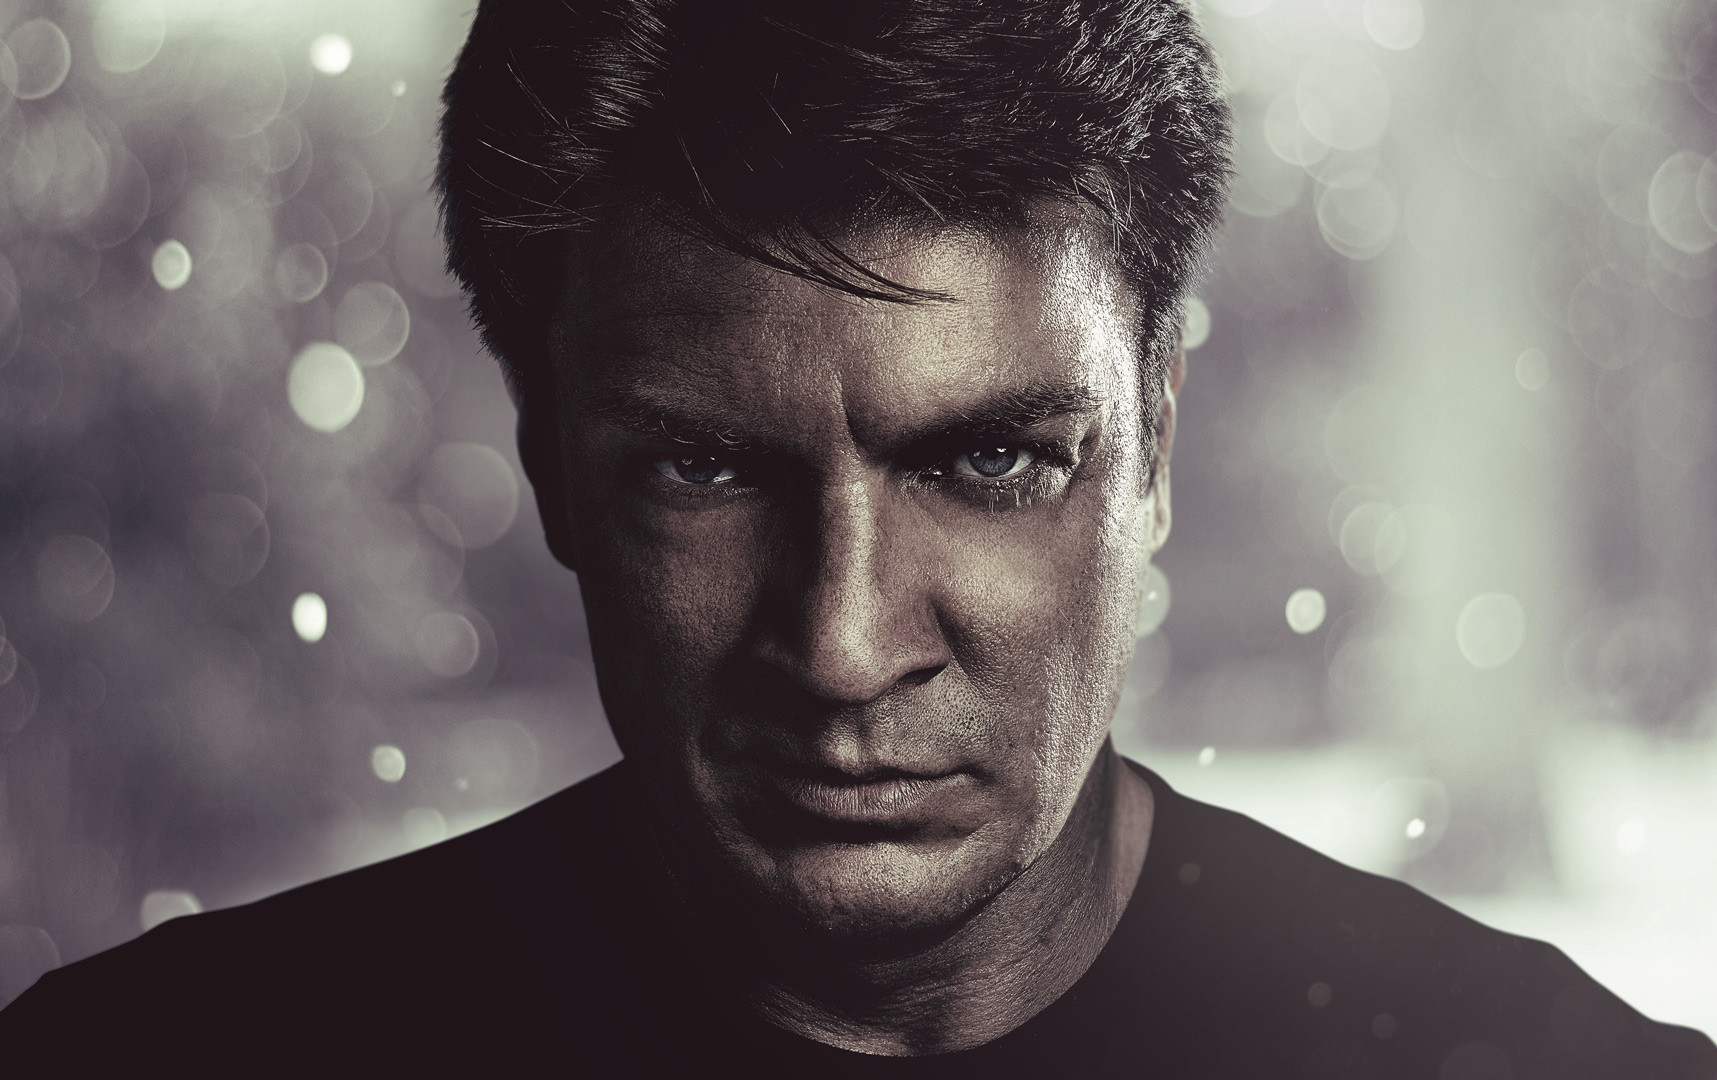 Wil wells nathan fillion 01